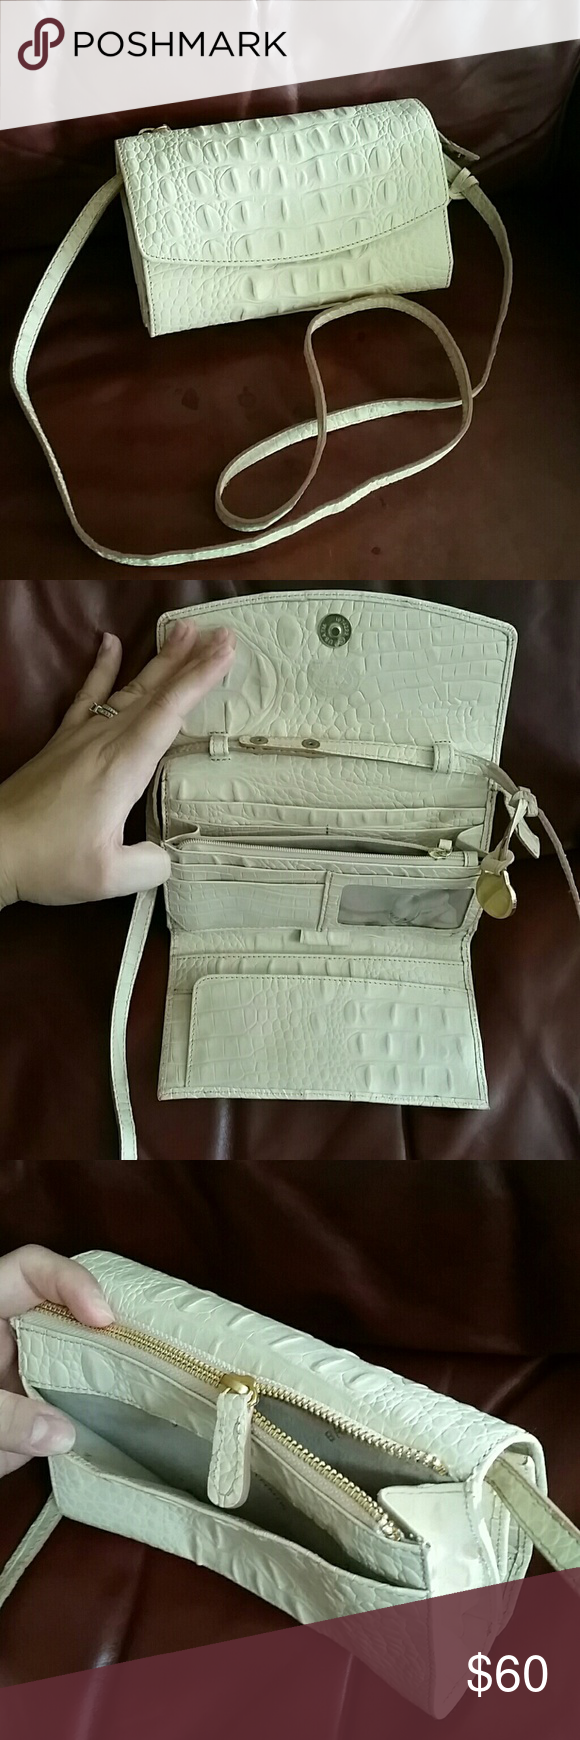 Brahmin crossbody Gently used. Creamy white leather with optional strap for crossbody or wallet. Multiple compartments. Strap in good condition. Auth. Best offer accepted :) Brahmin Bags Crossbody Bags